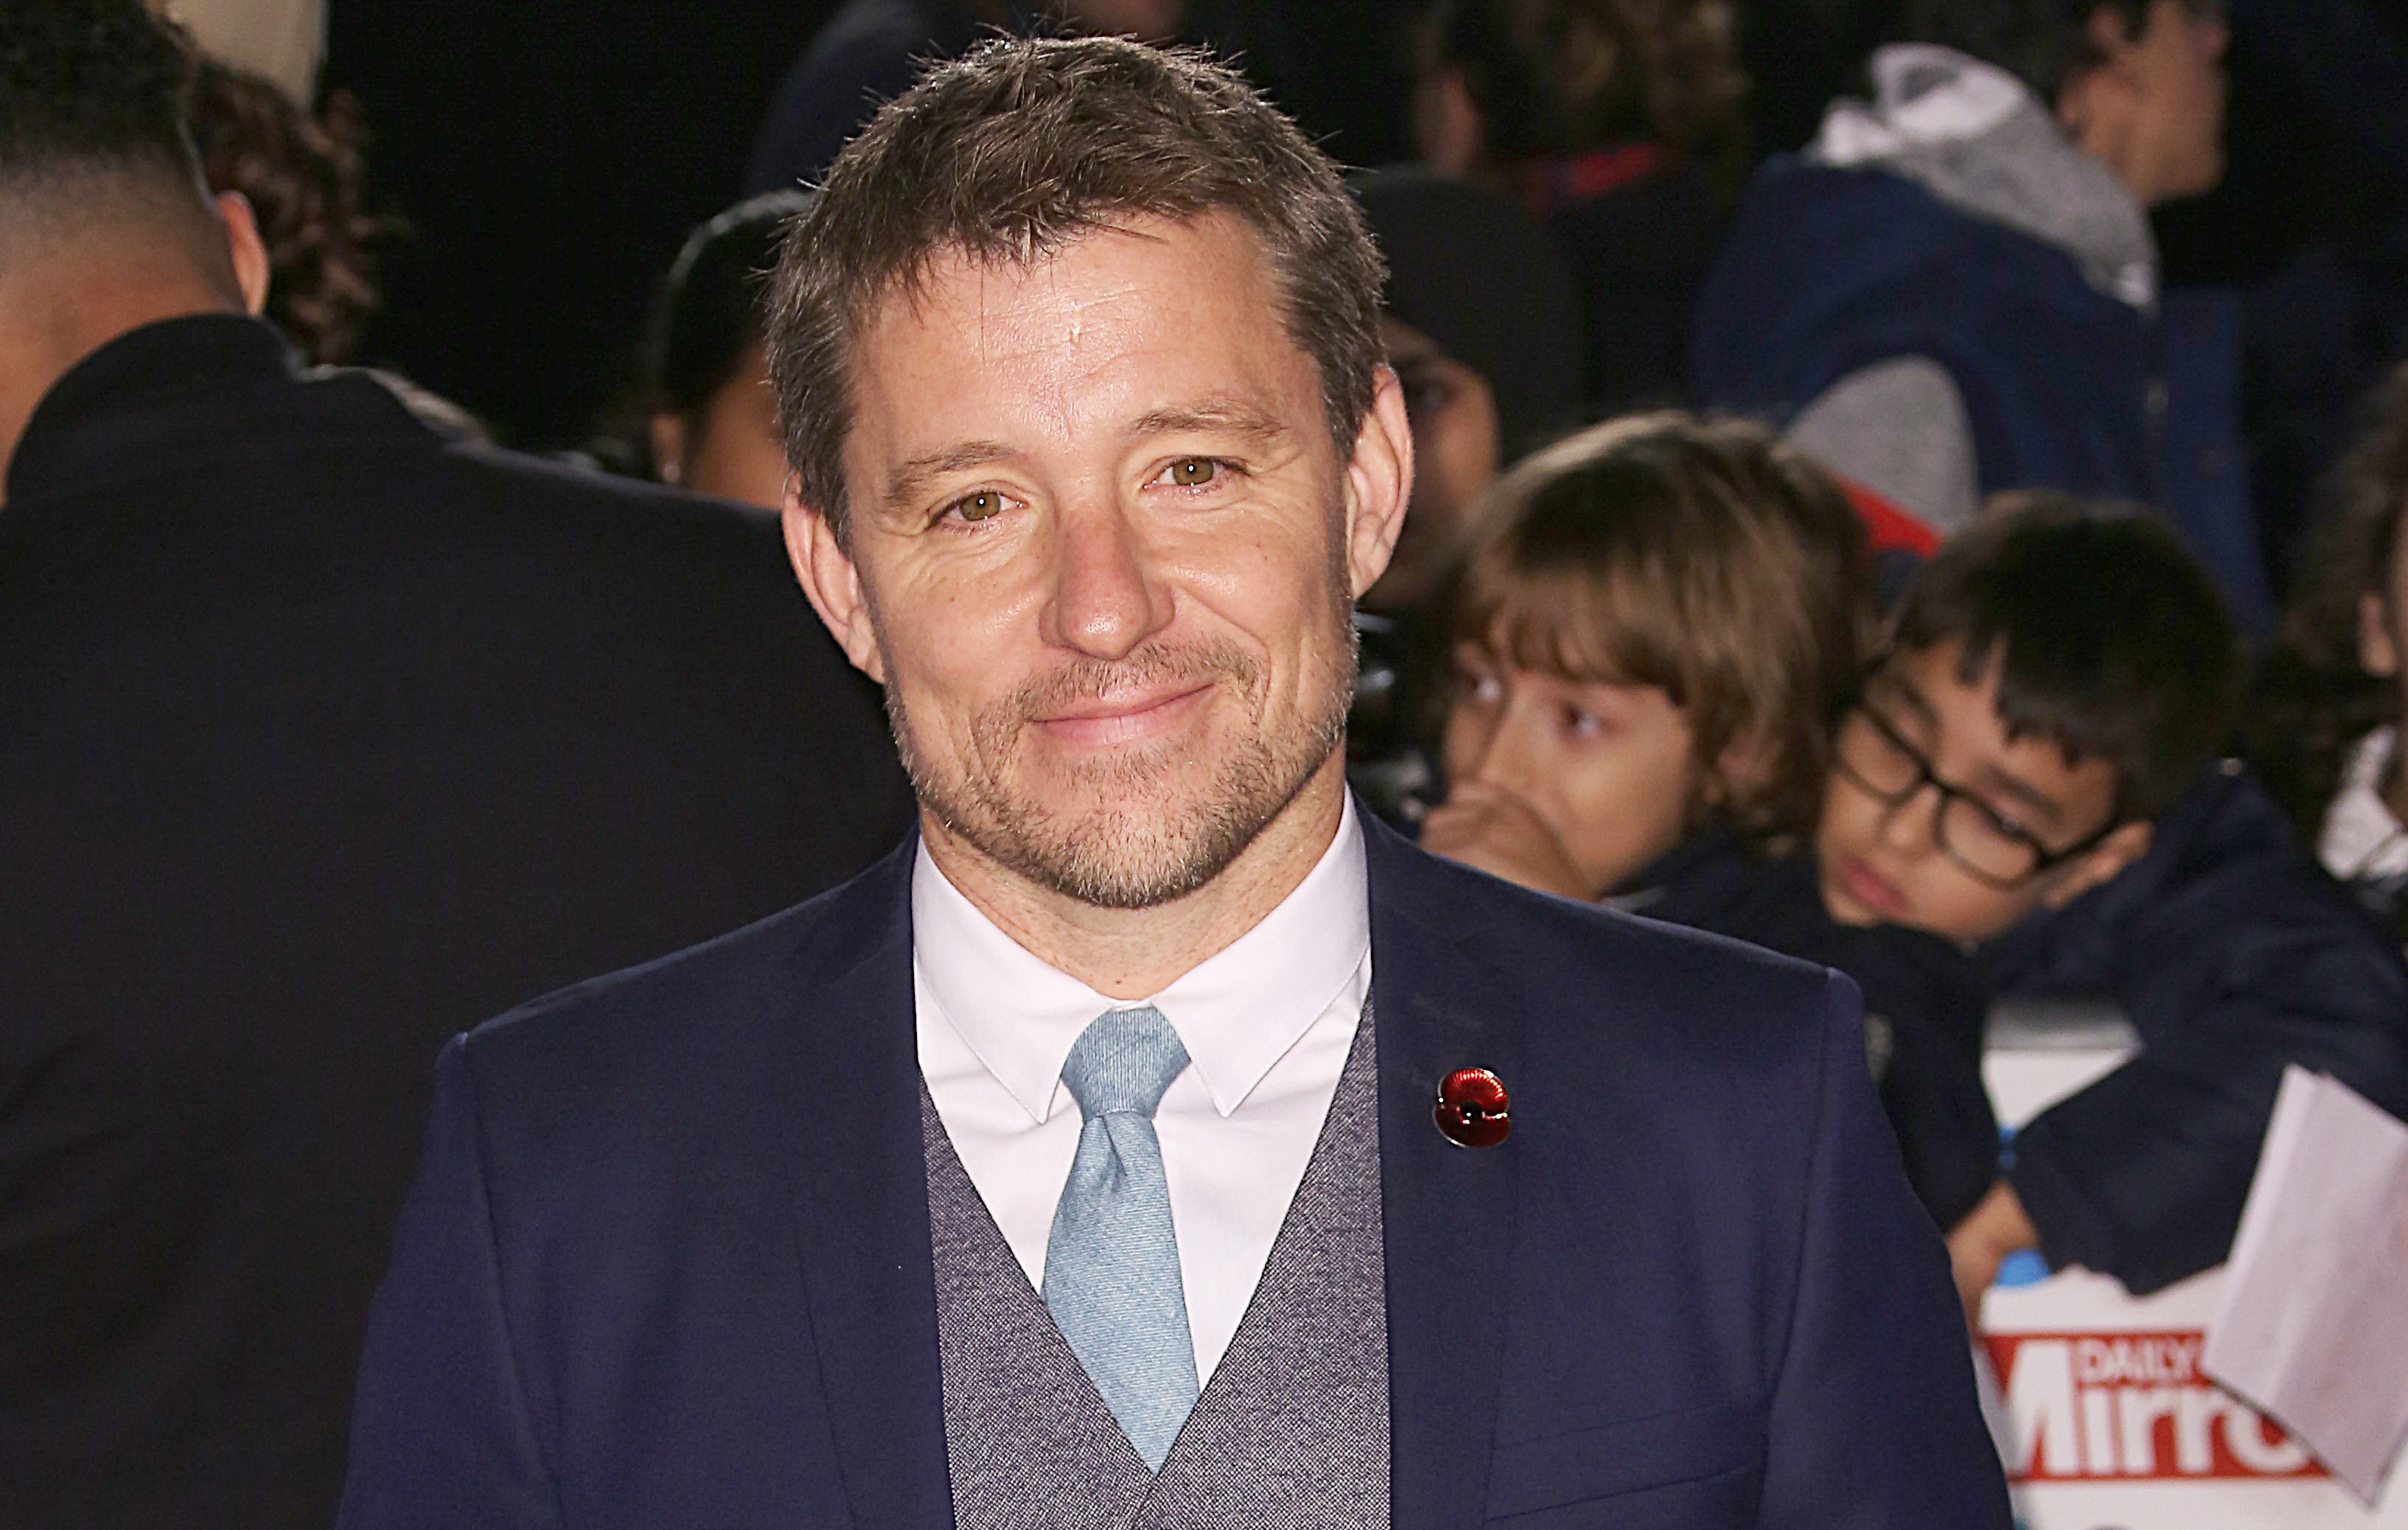 Ben Shephard reveals he won't take part in Strictly Come Dancing due to 'Strictly curse'